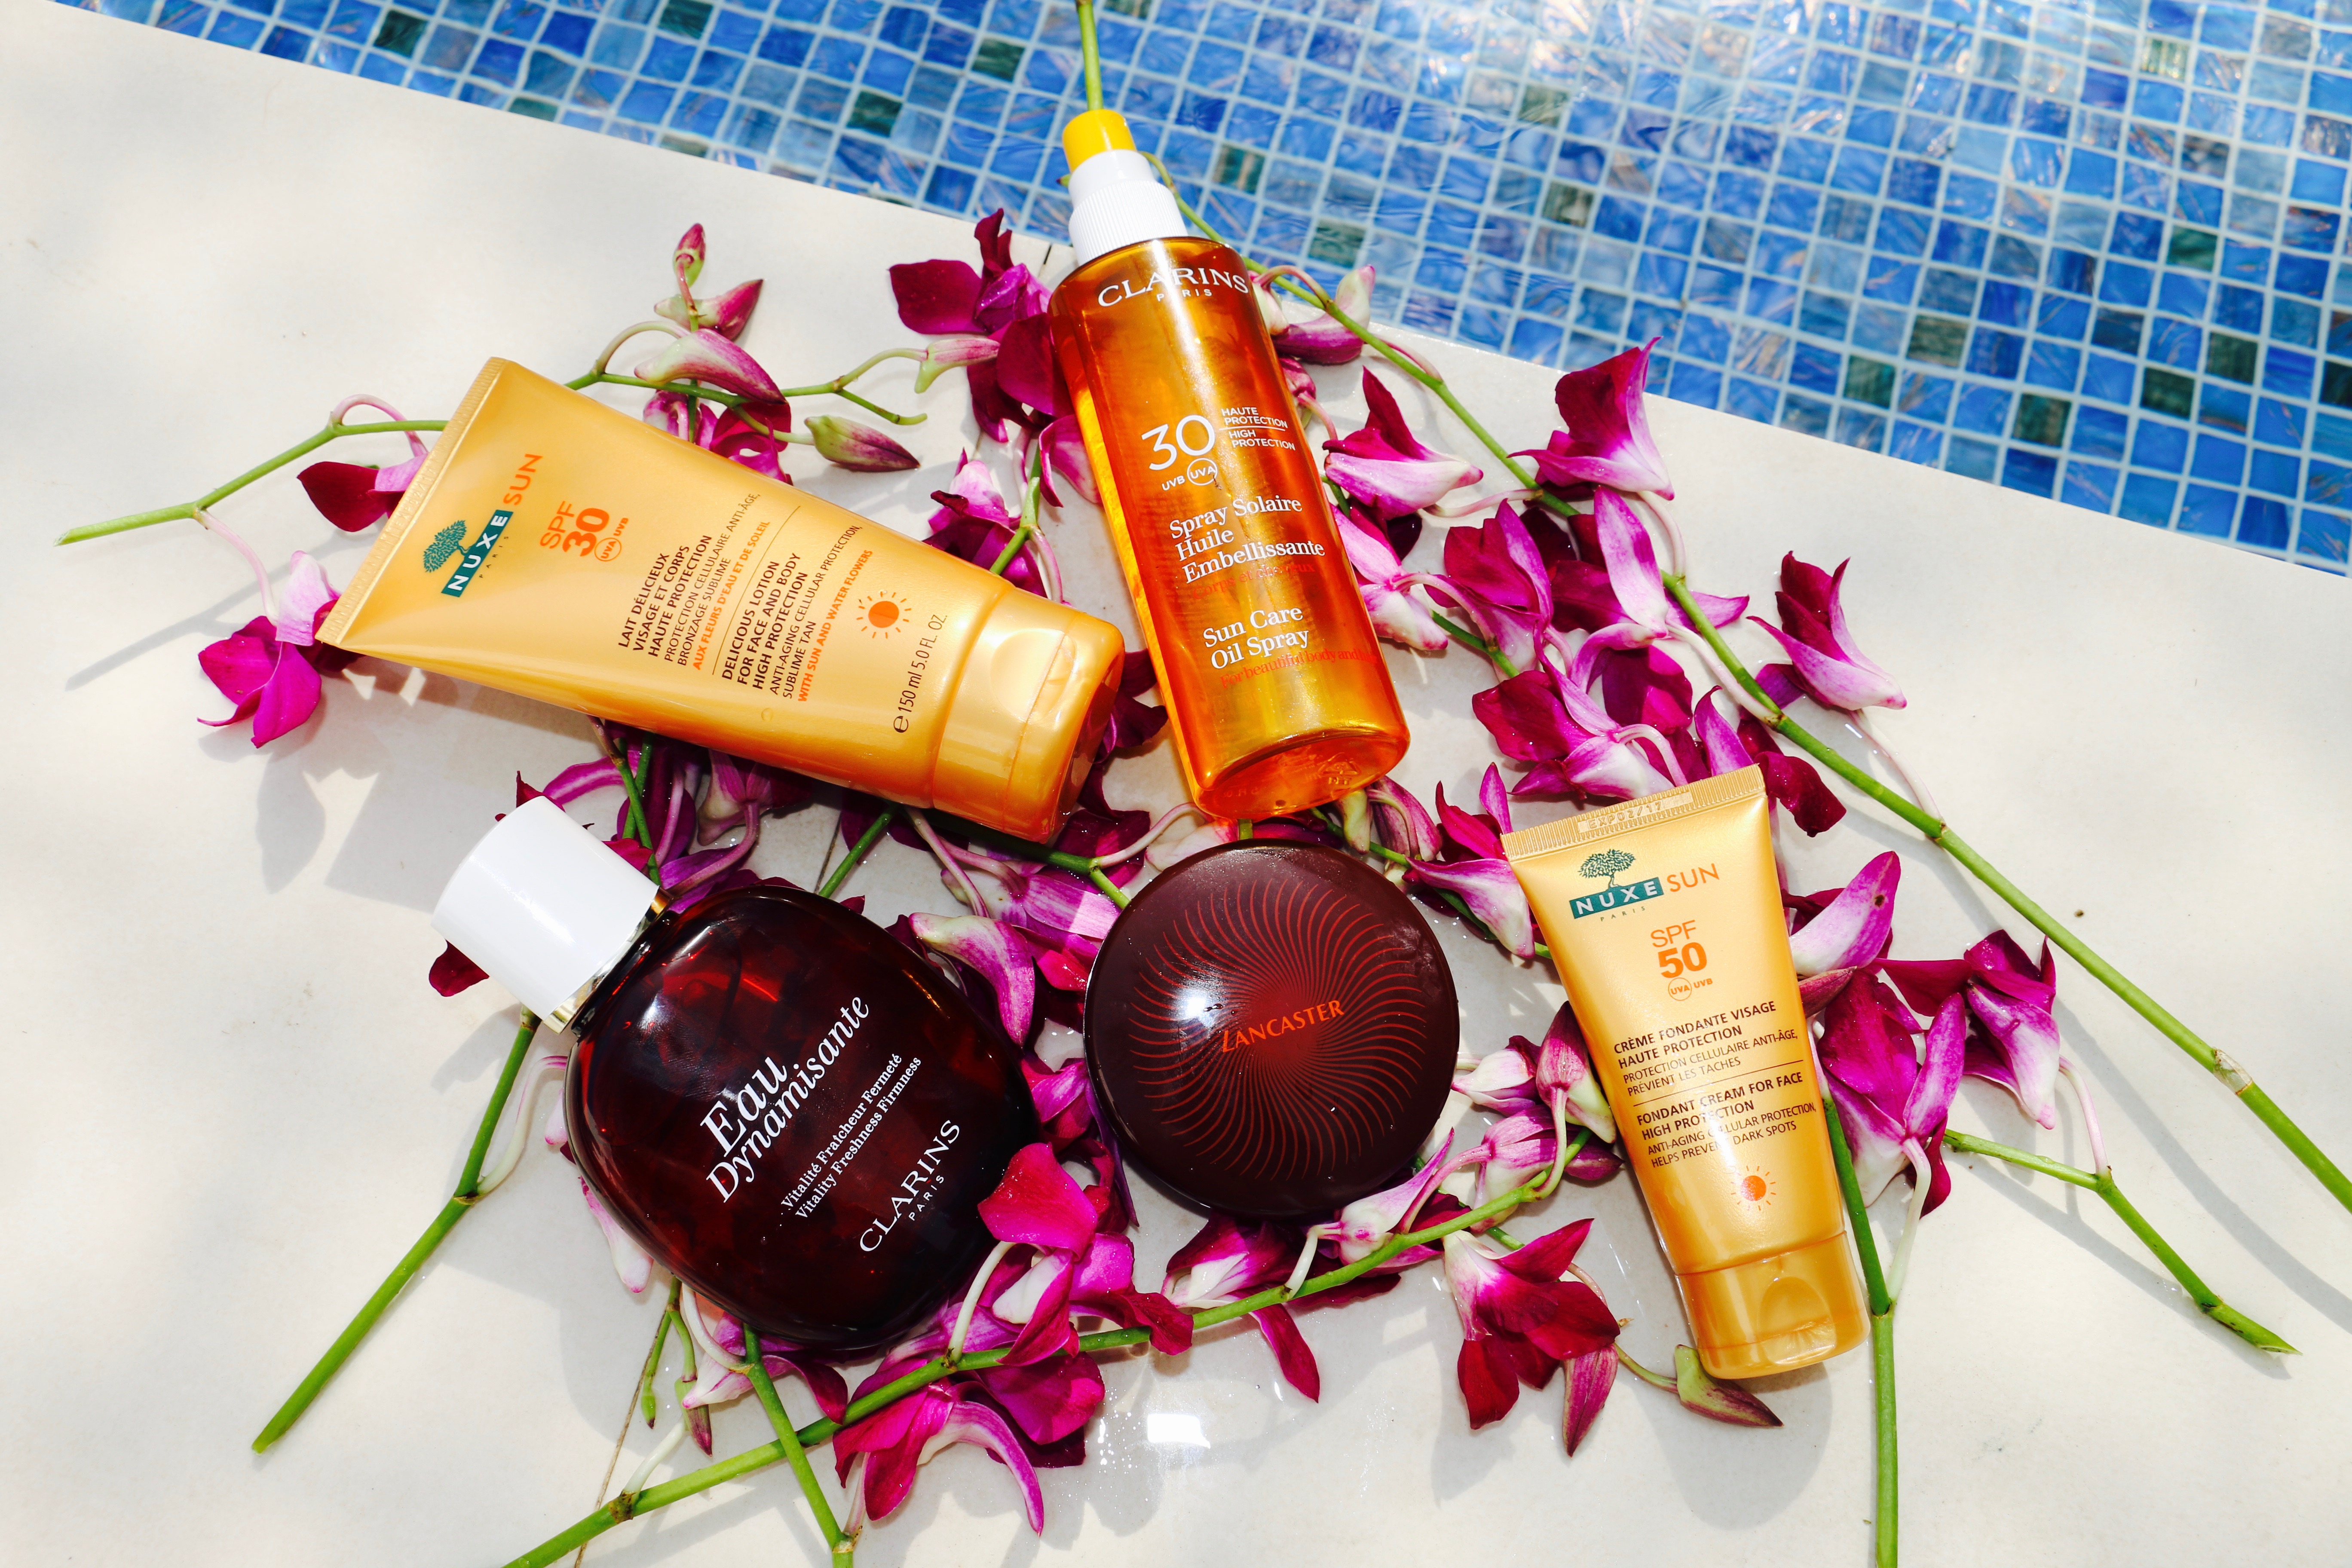 Summer Beach Beauty Must Haves - Suncare & Fragrance - Clarins, Nuxe & Lancaster